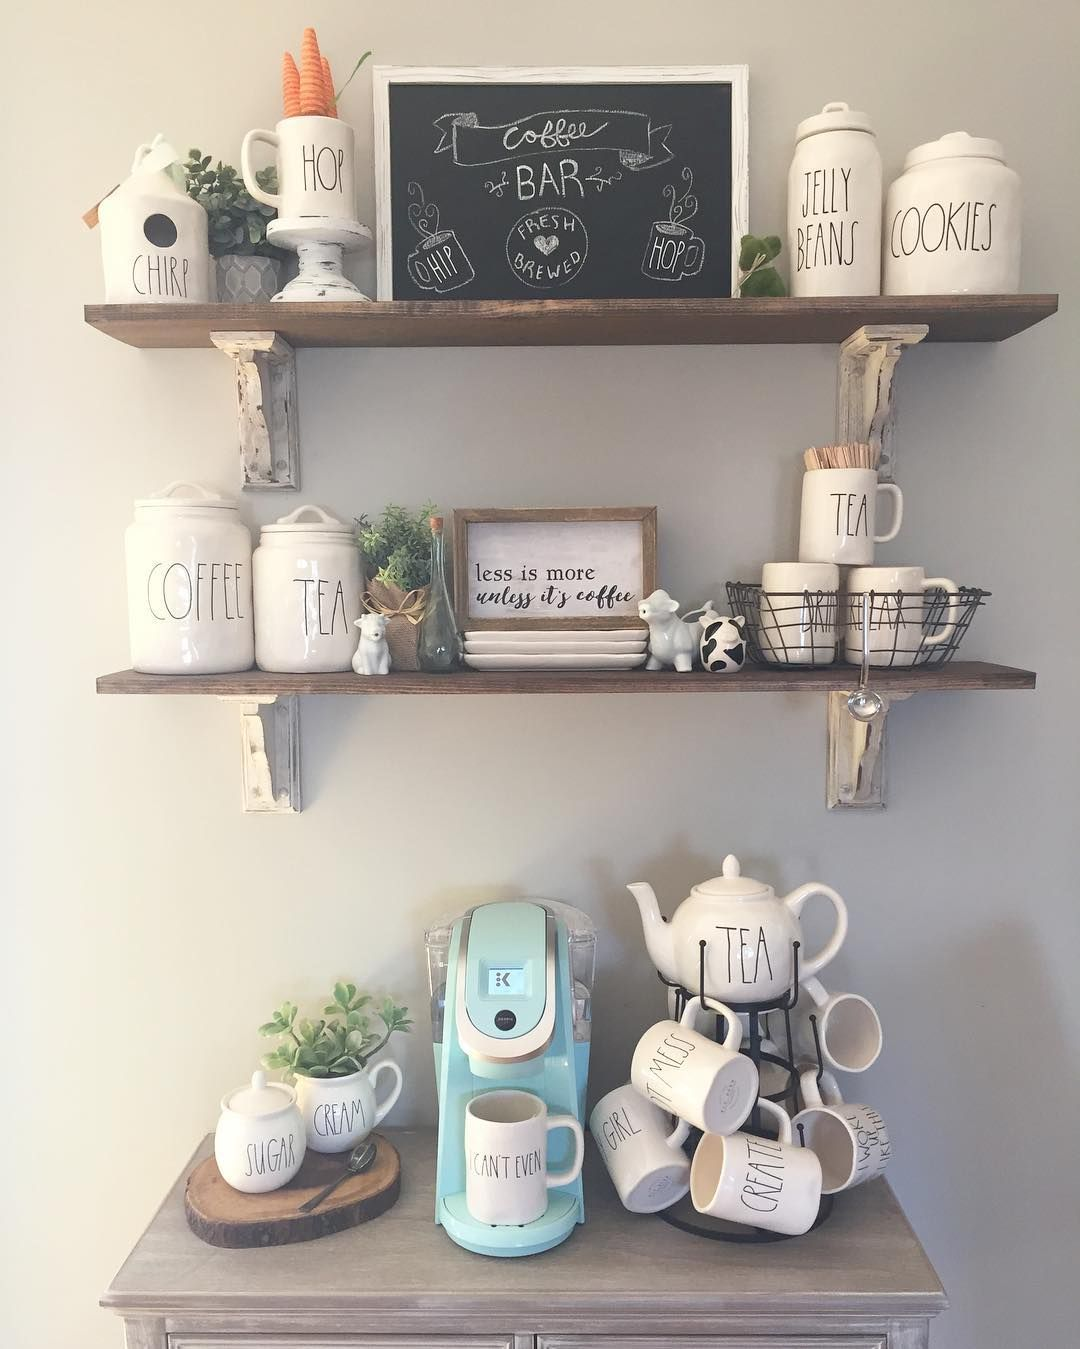 128 Likes, 16 Comments - Amy Rose (@diydecormama) on ...